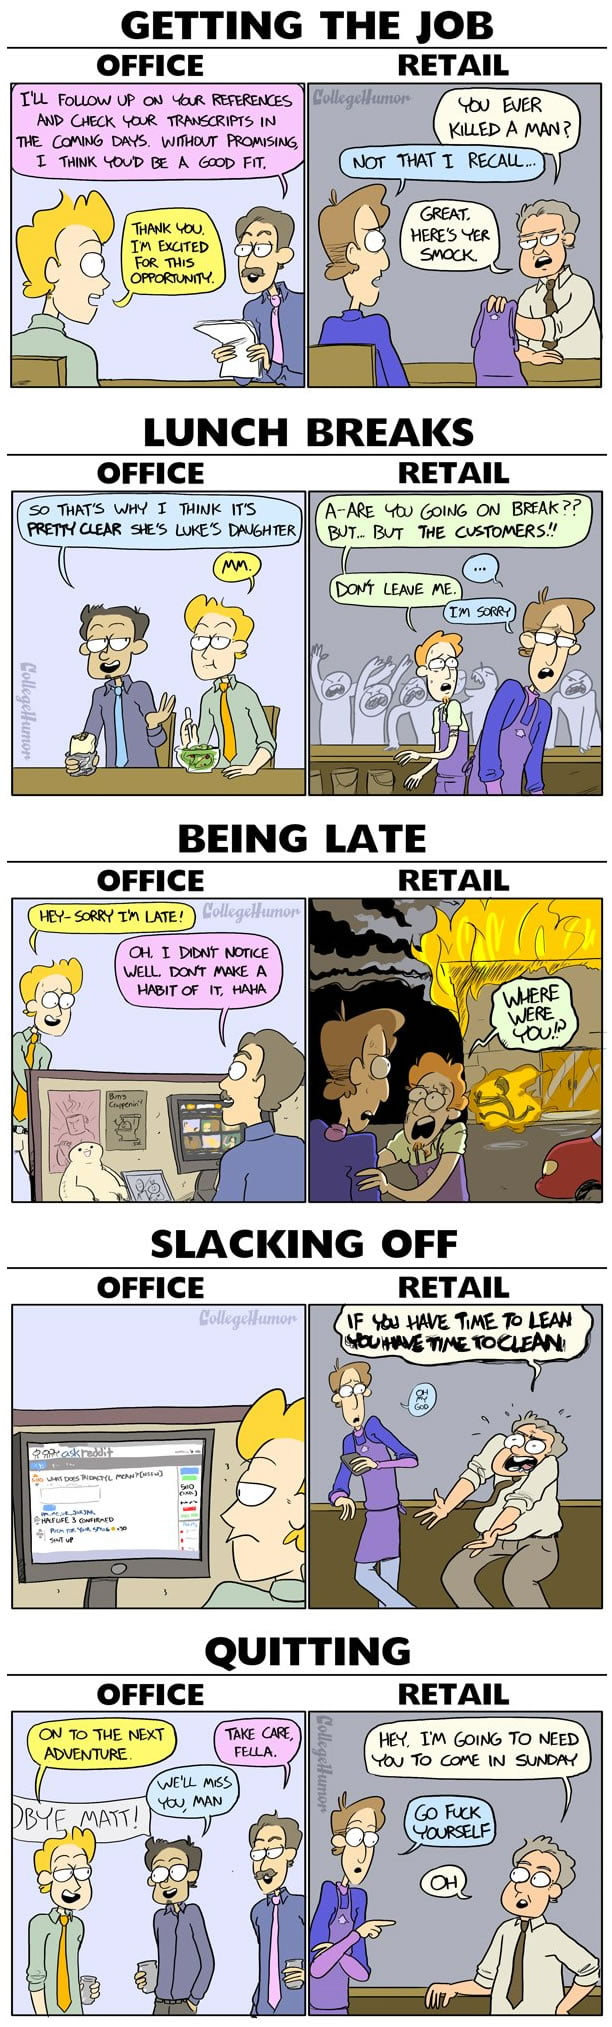 Office vs retail jobs